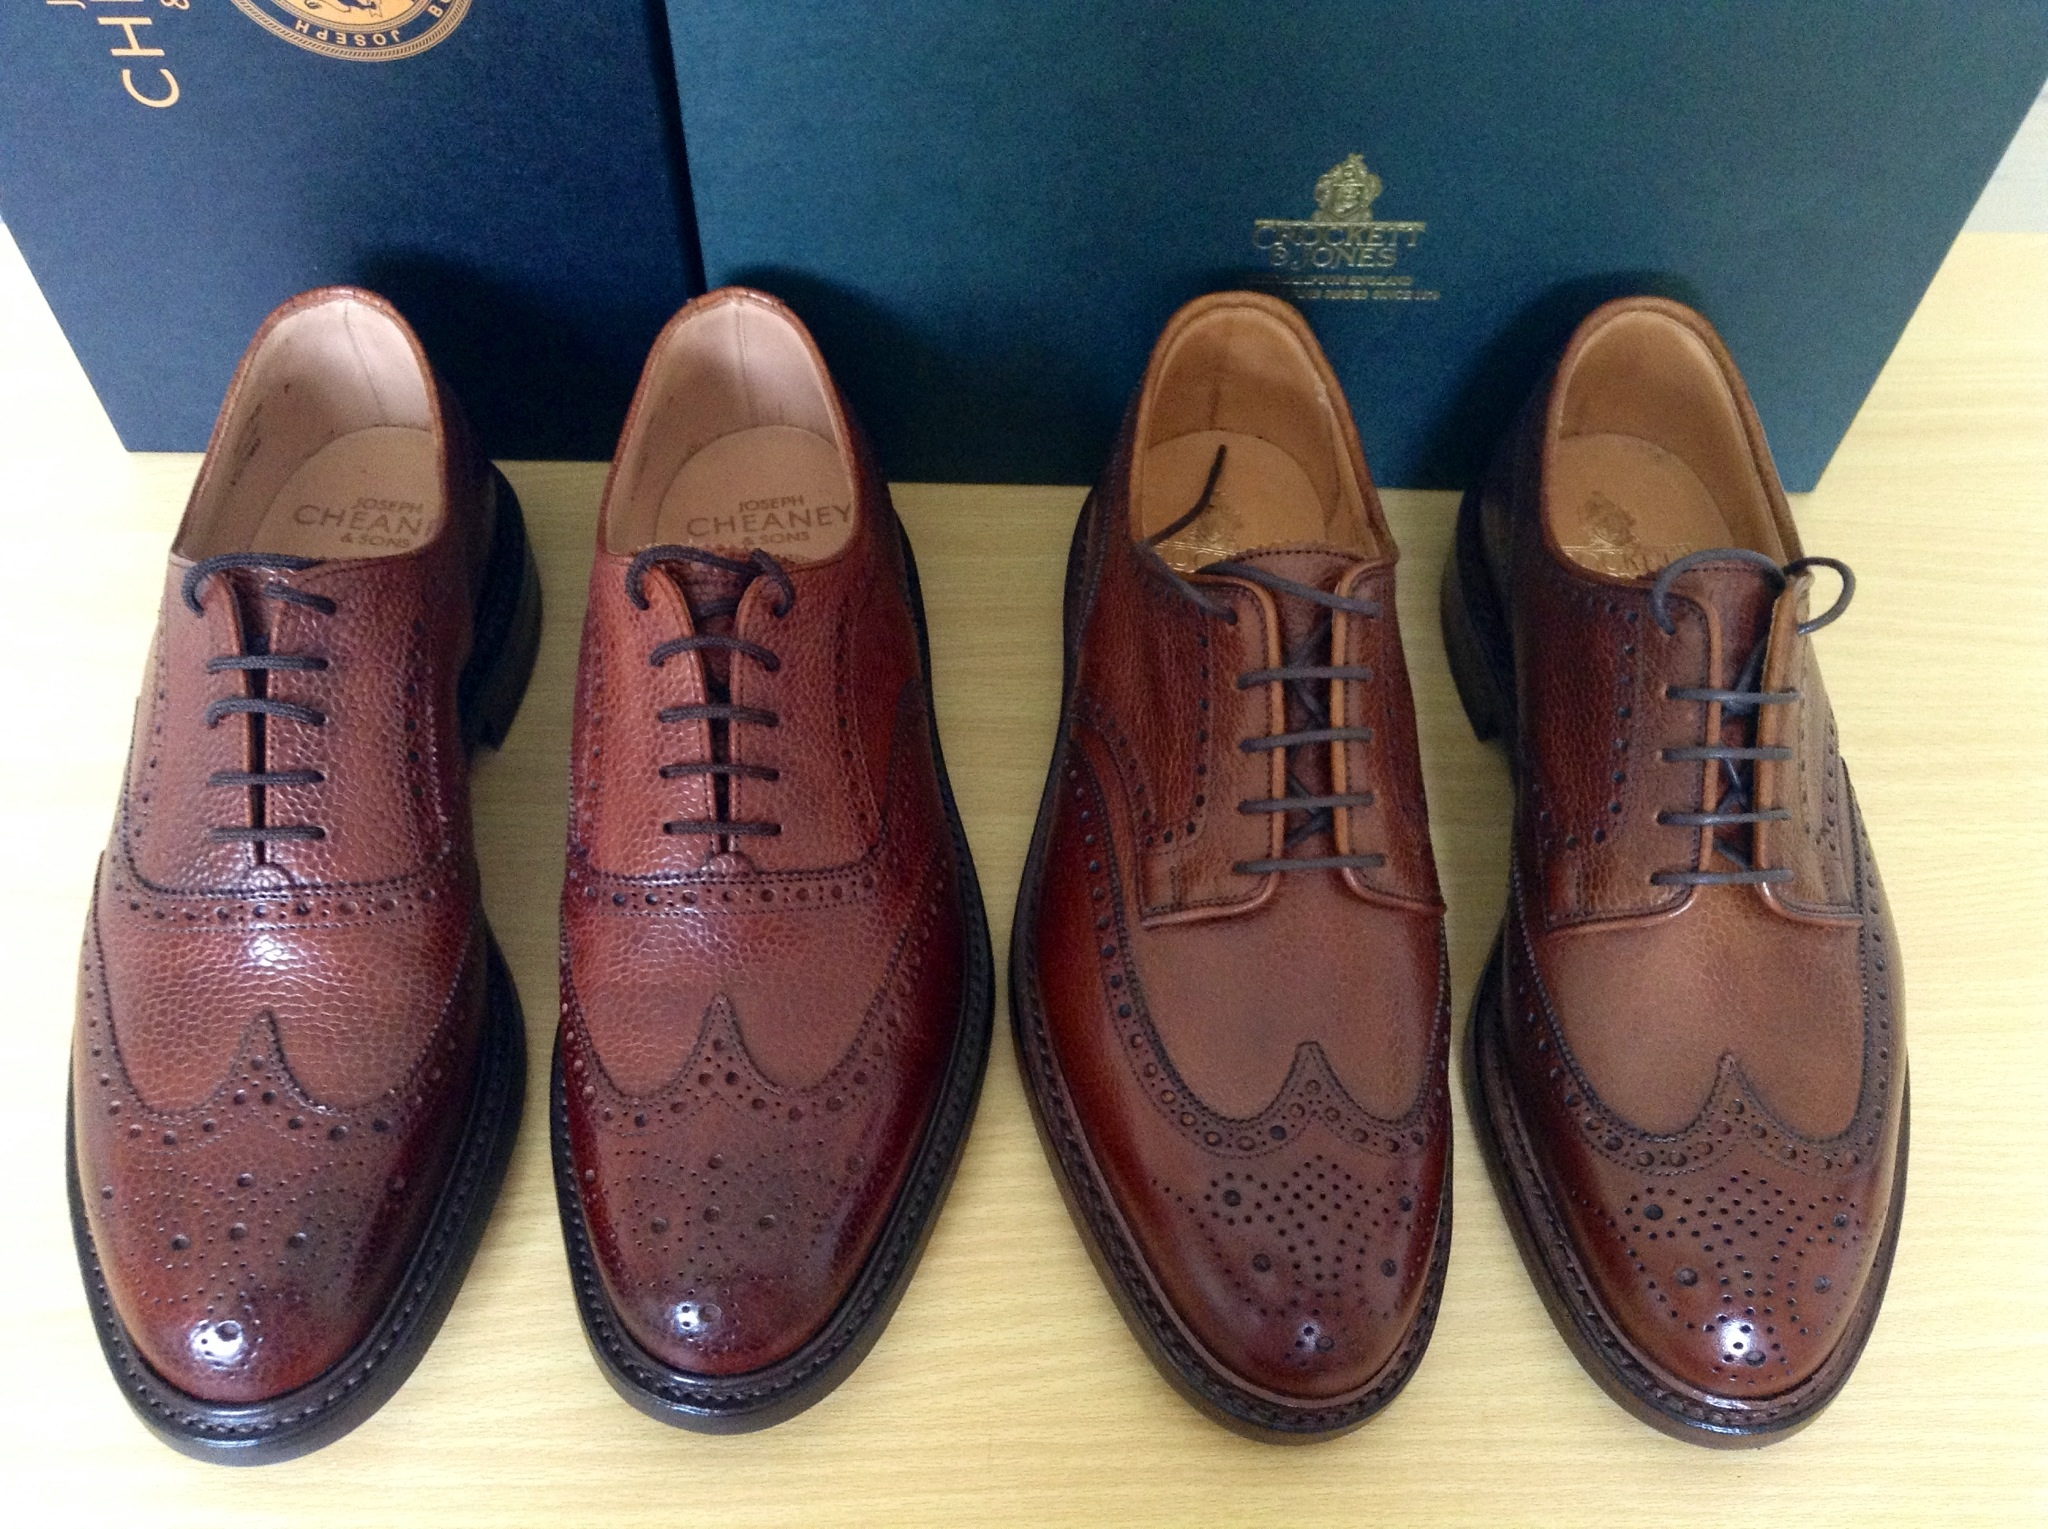 new arrivals really cheap purchase cheap Cheaney vs Crockett & Jones | Page 3 | Styleforum